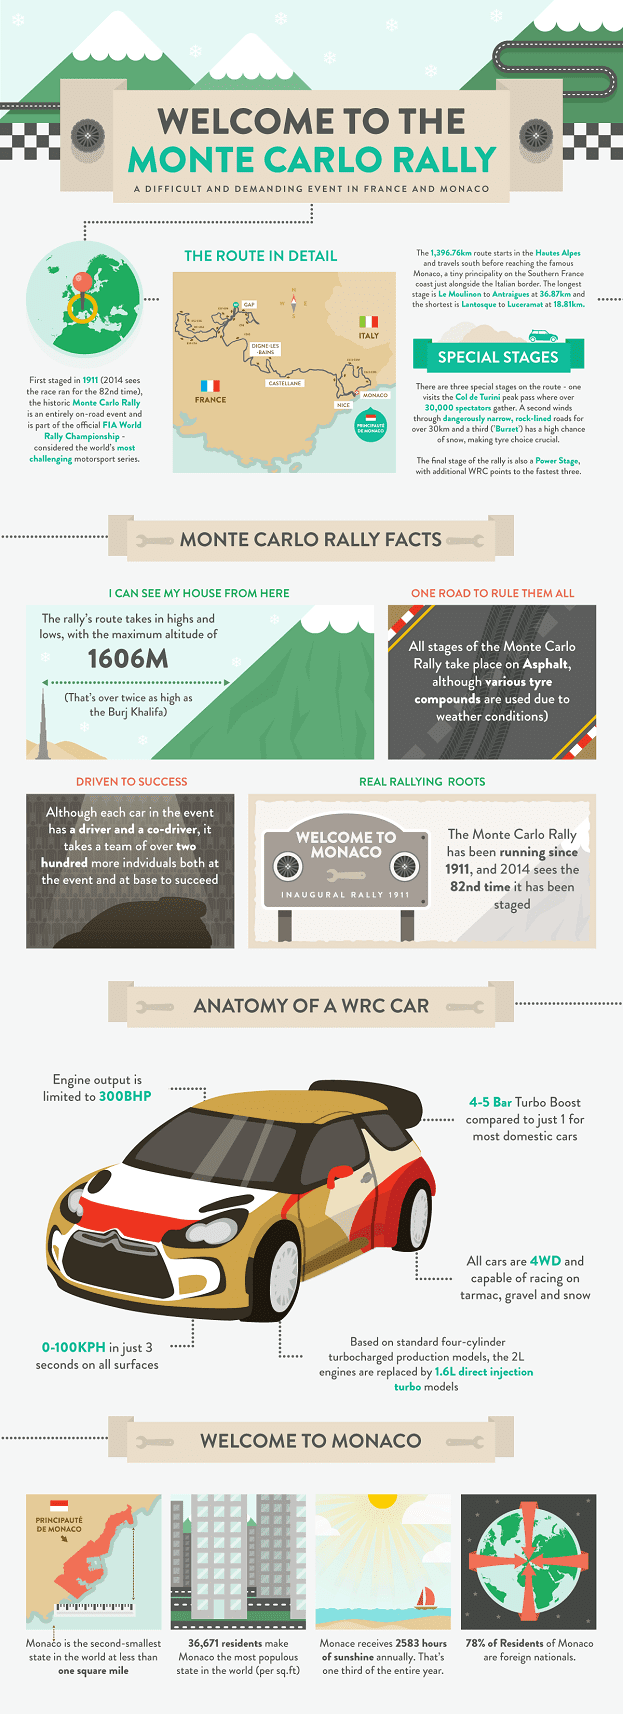 Monte Carlo Rally infographic photo on Automoblog.net